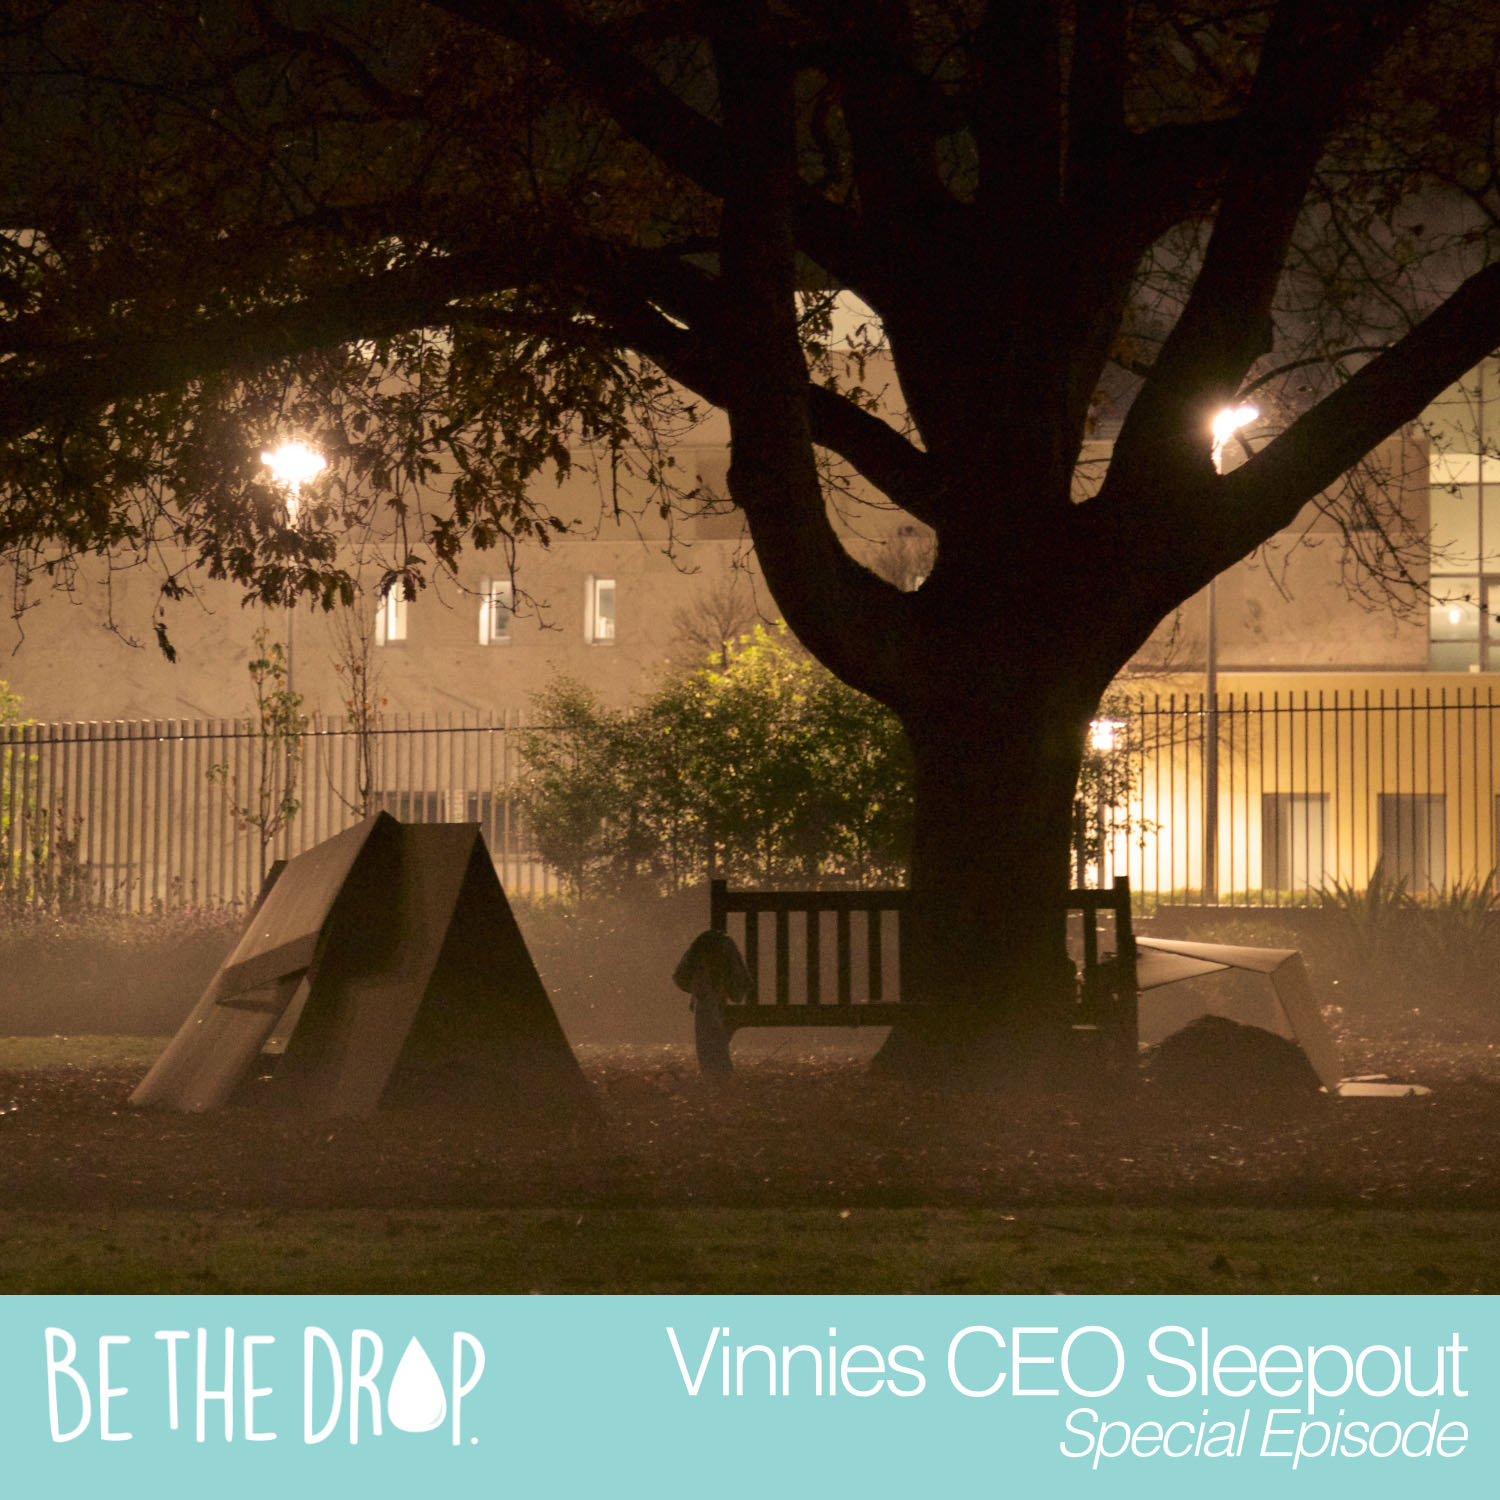 Together We Can Break The Cycle of Homelessness – CEO Sleepout